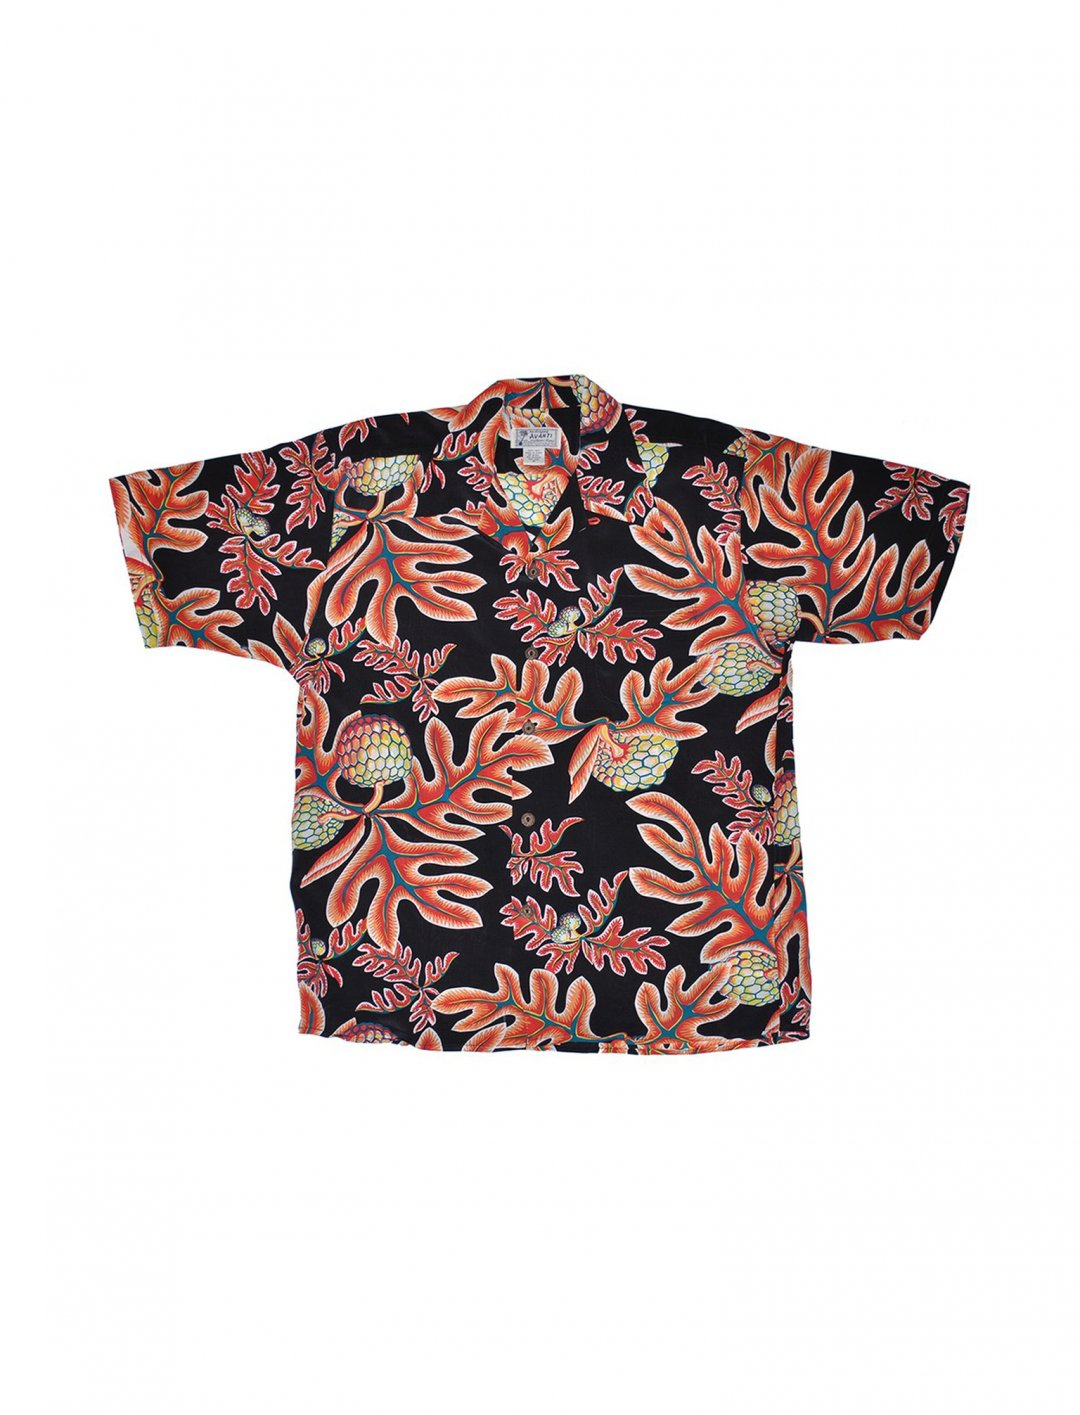 "G-Eazy's Printed Shirt {""id"":5,""product_section_id"":1,""name"":""Clothing"",""order"":5} Avanti Designs"